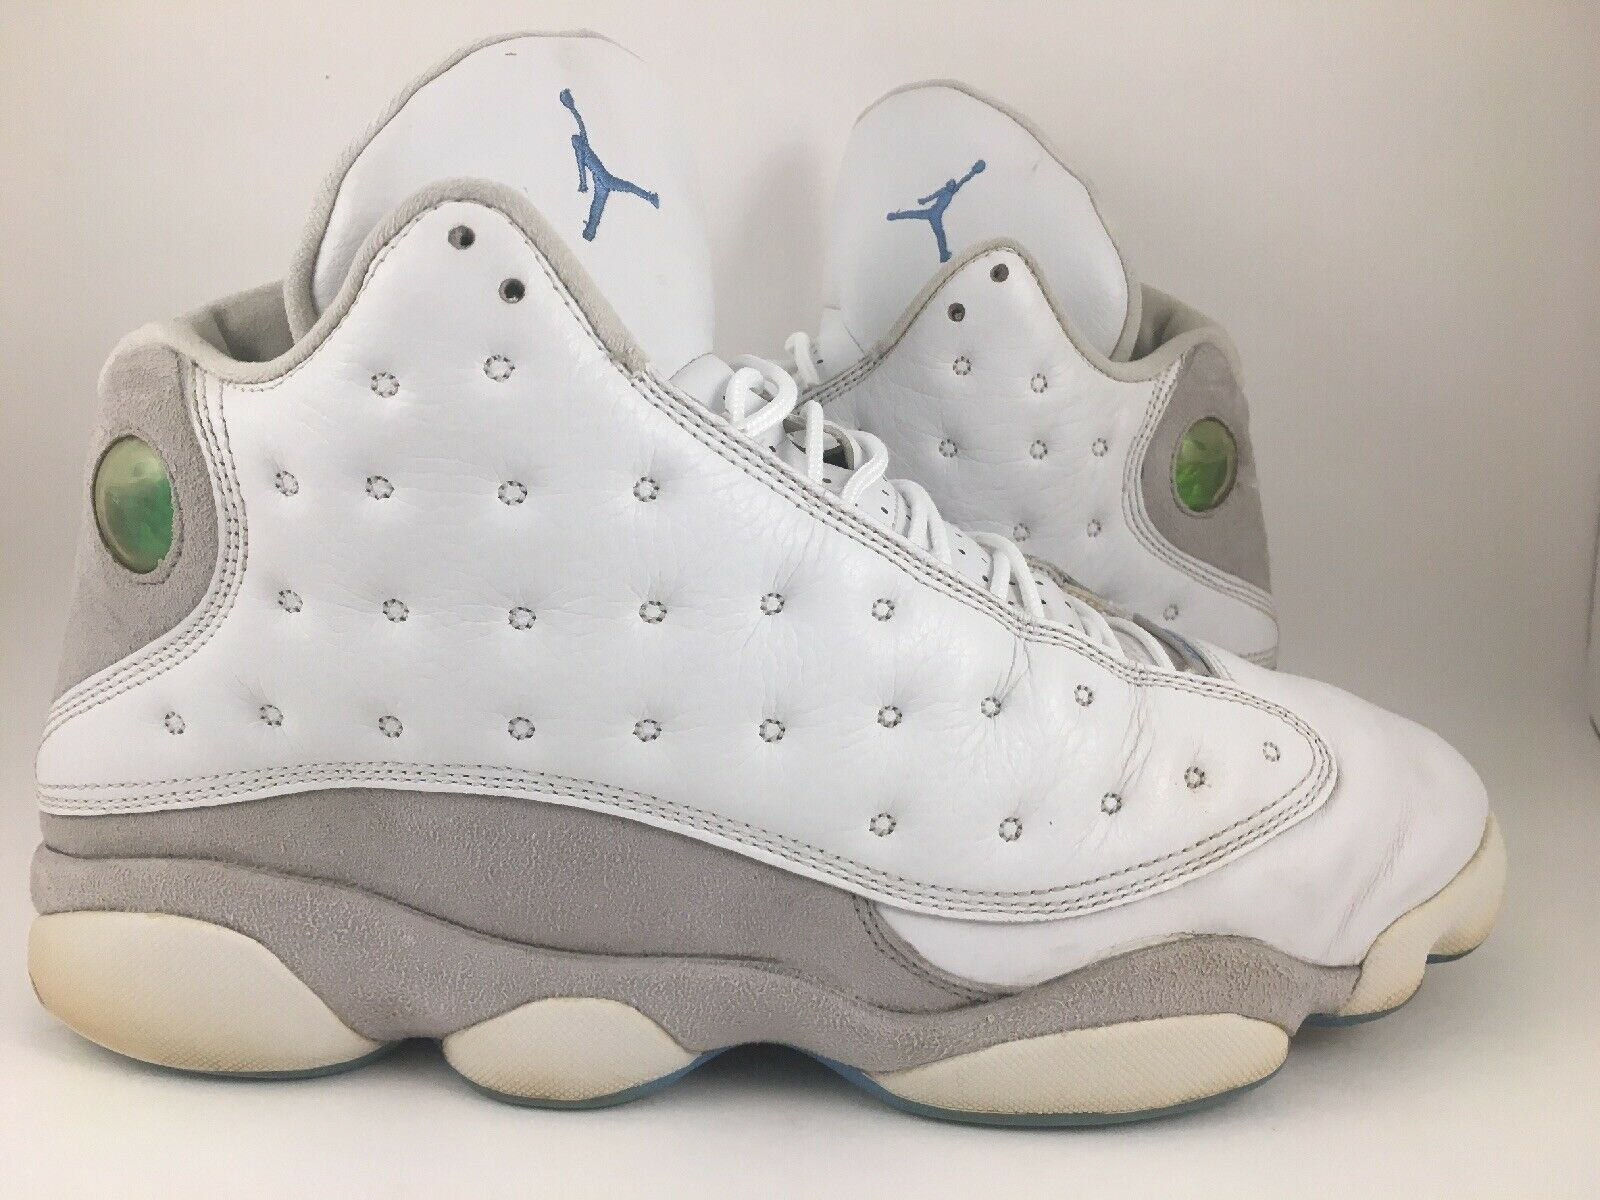 f3f88fb7b1b Nike Air Jordan 13 XIII Retro White Neutral Grey University Blue ...